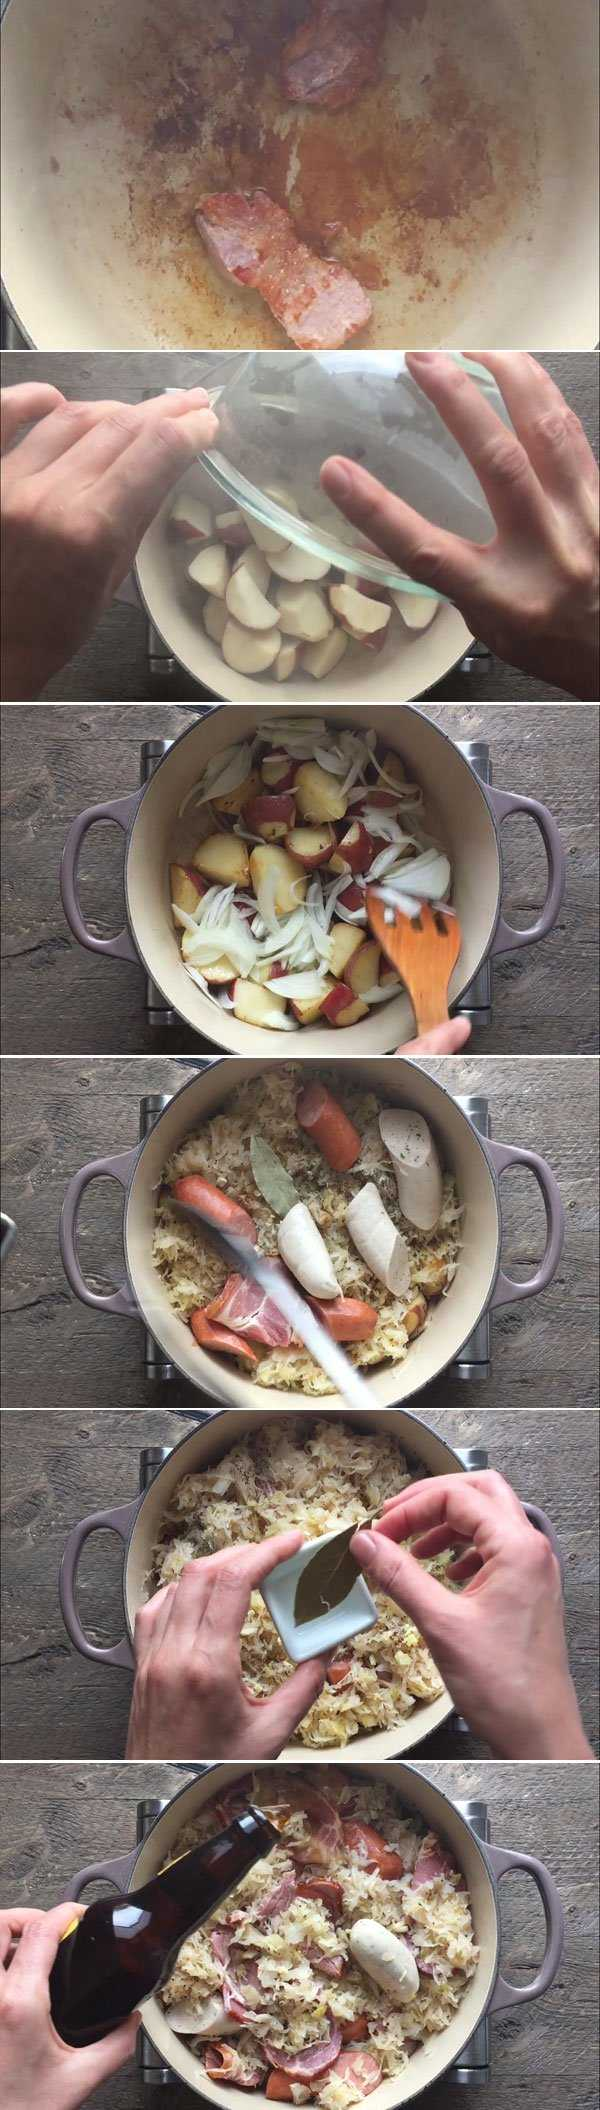 Steps to Make Choucroute Garnie Picture Collage